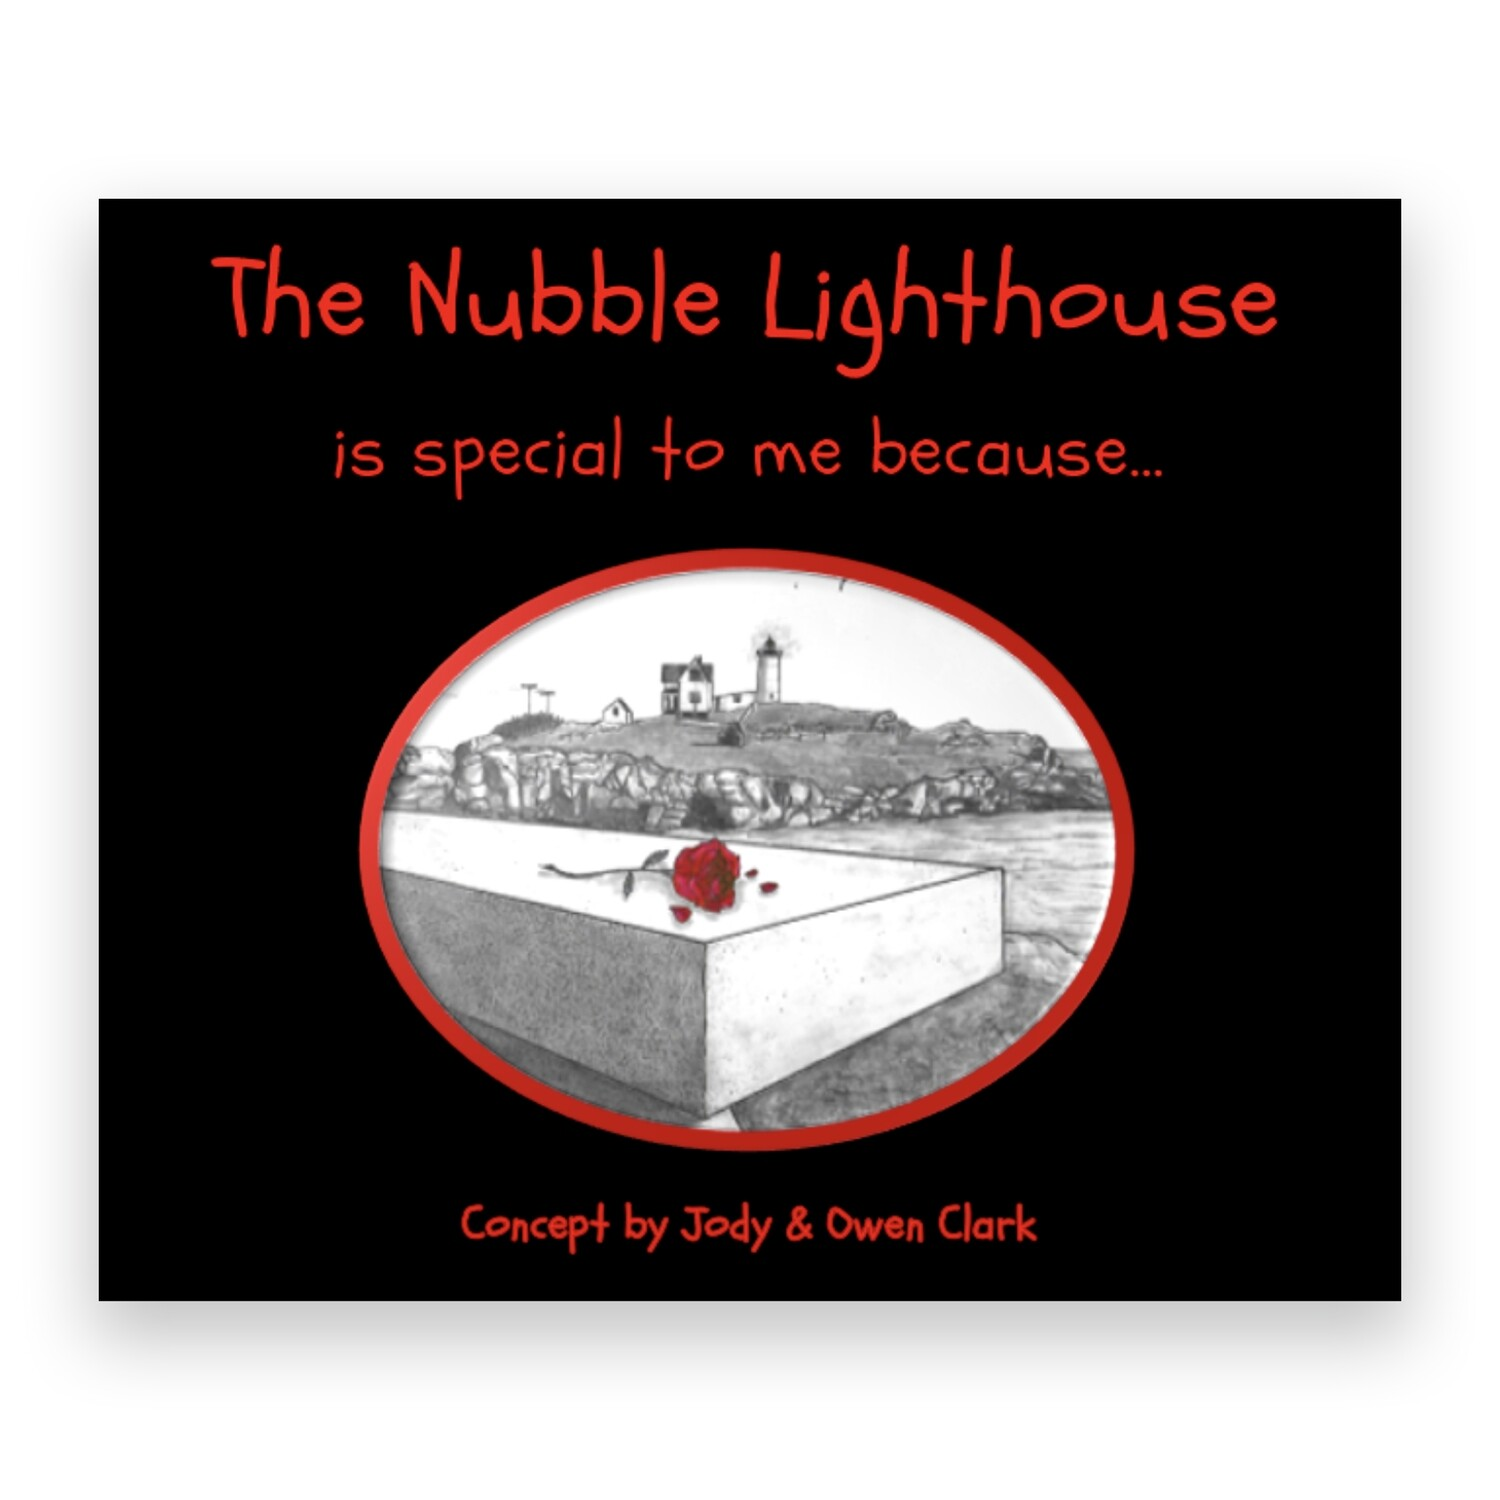 The Nubble is Special to me because